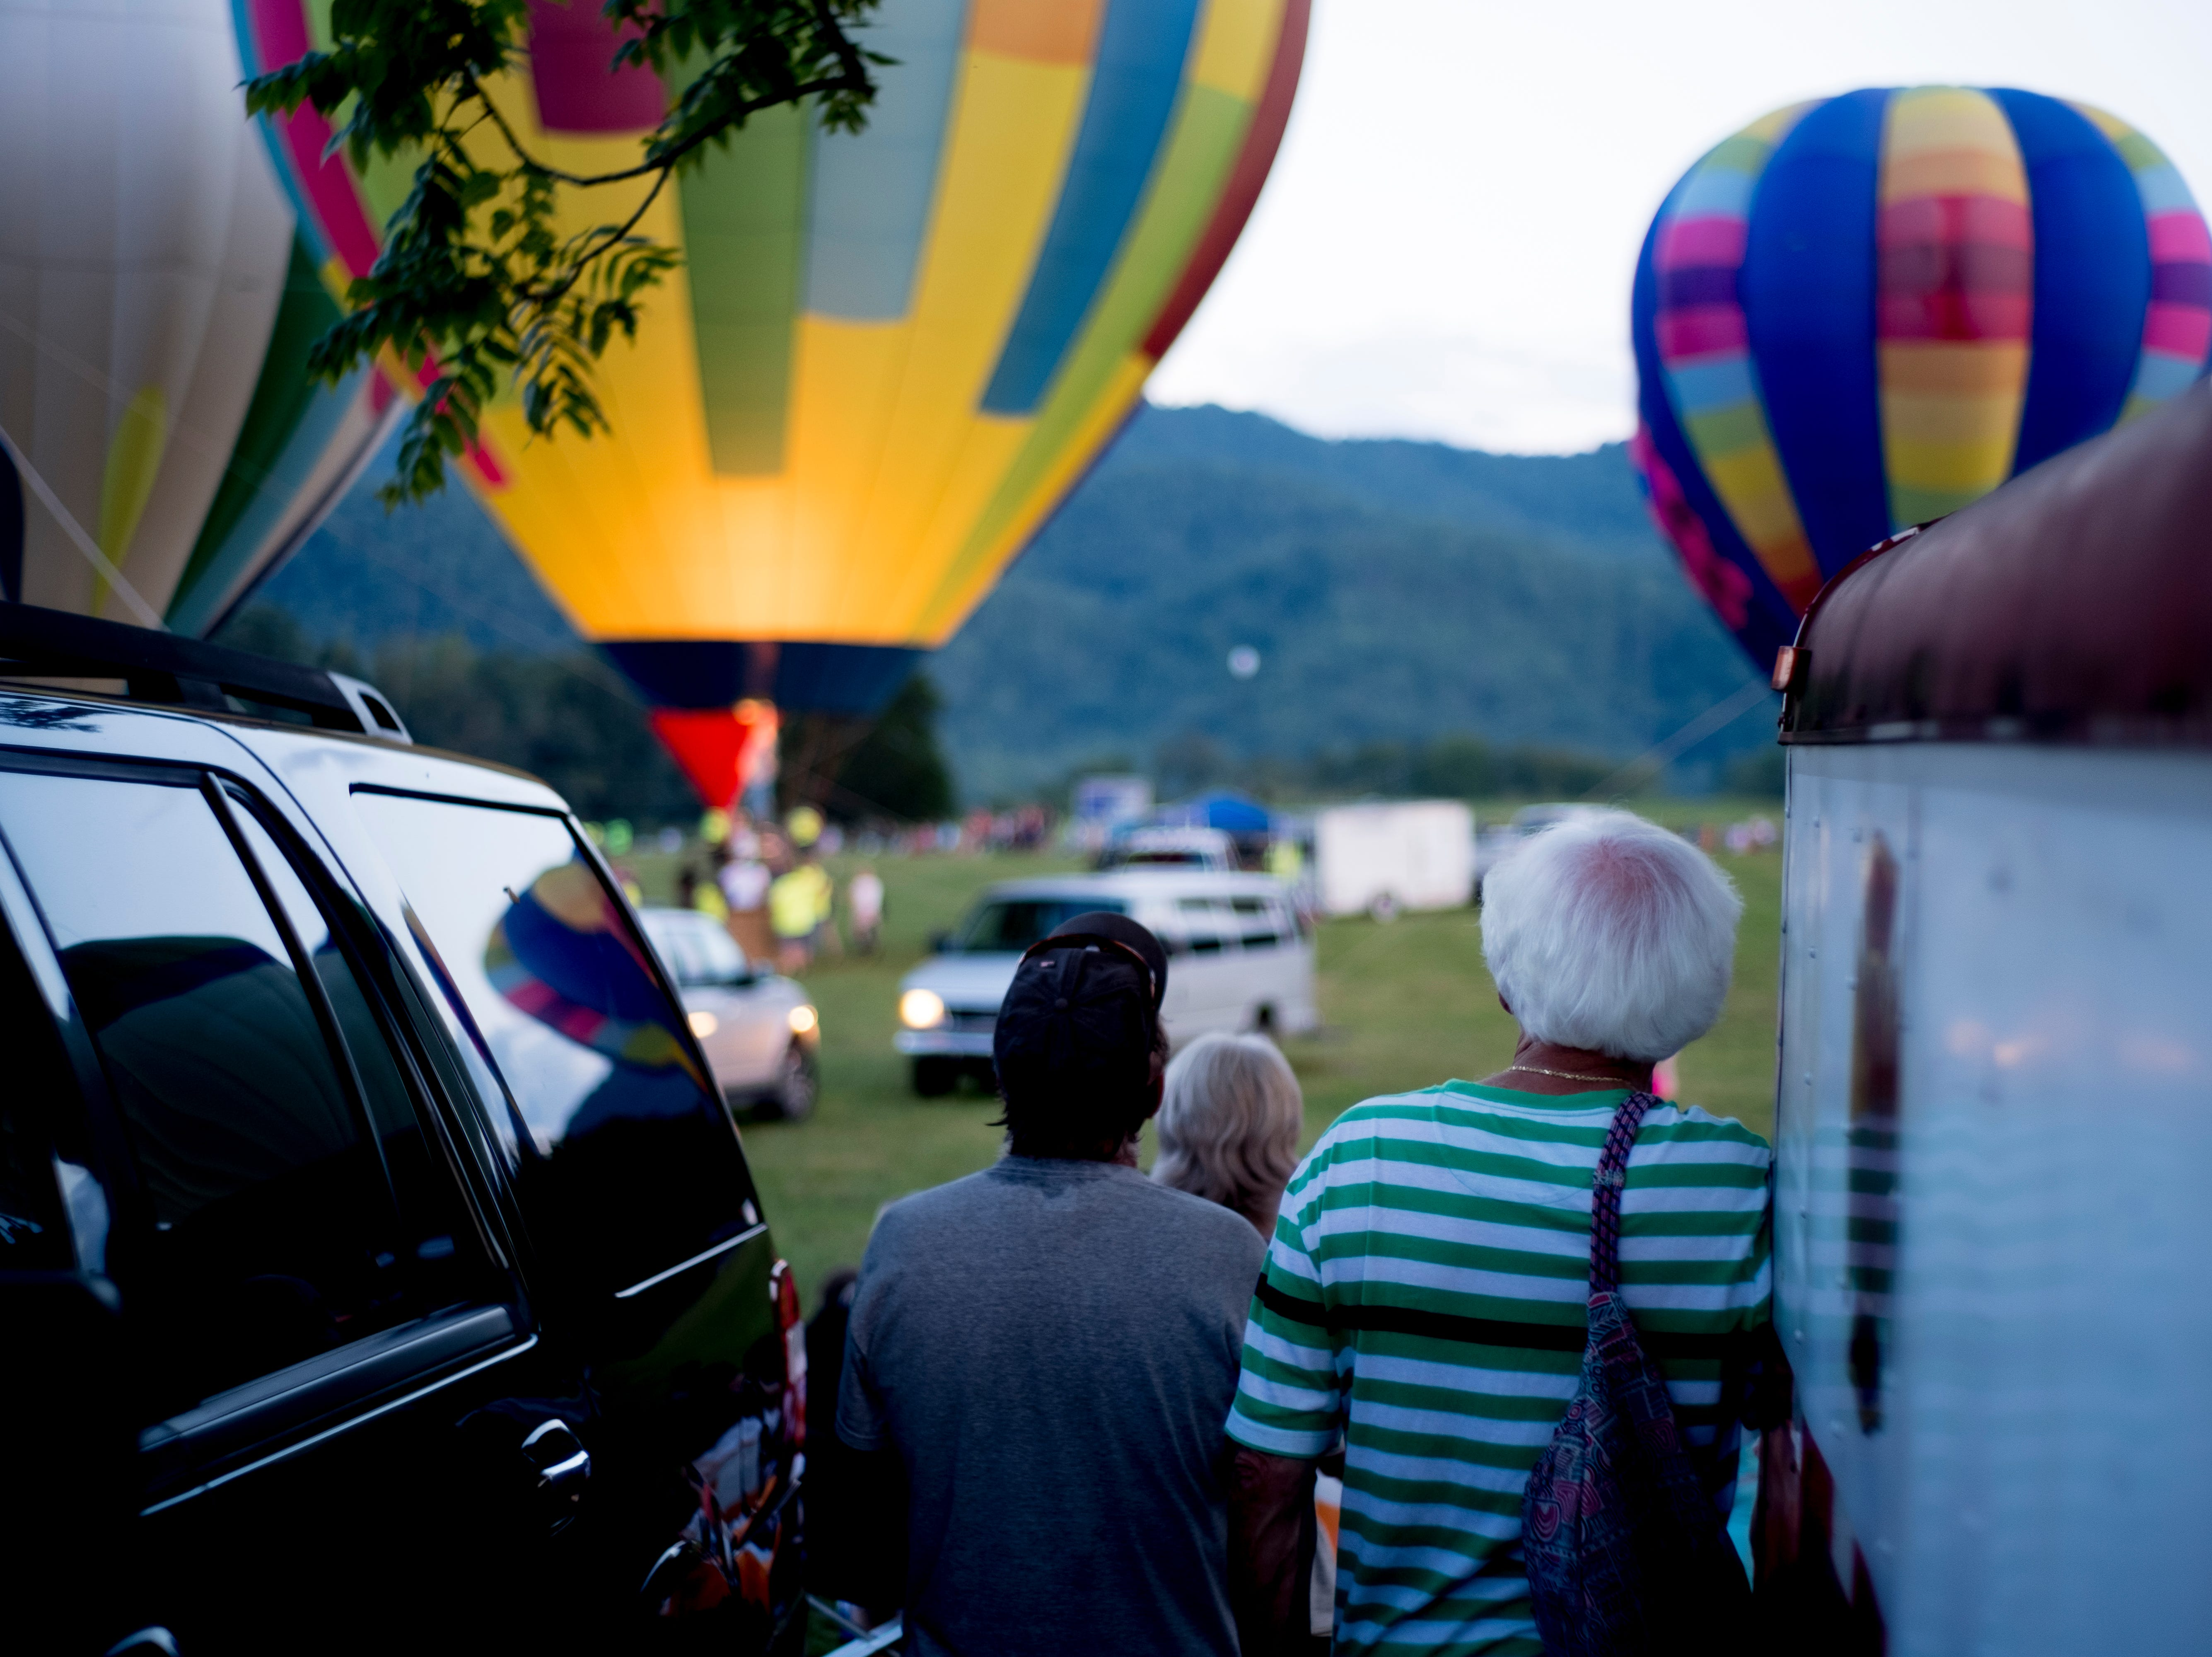 Visitors watch as the hot air balloons rise into the air at the second annual Smoky Mountain Balloon Festival in Townsend, Tennessee on Saturday, August 18, 2018. The festival featured several hot air balloons, food trucks, wine tasting and live entertainment.